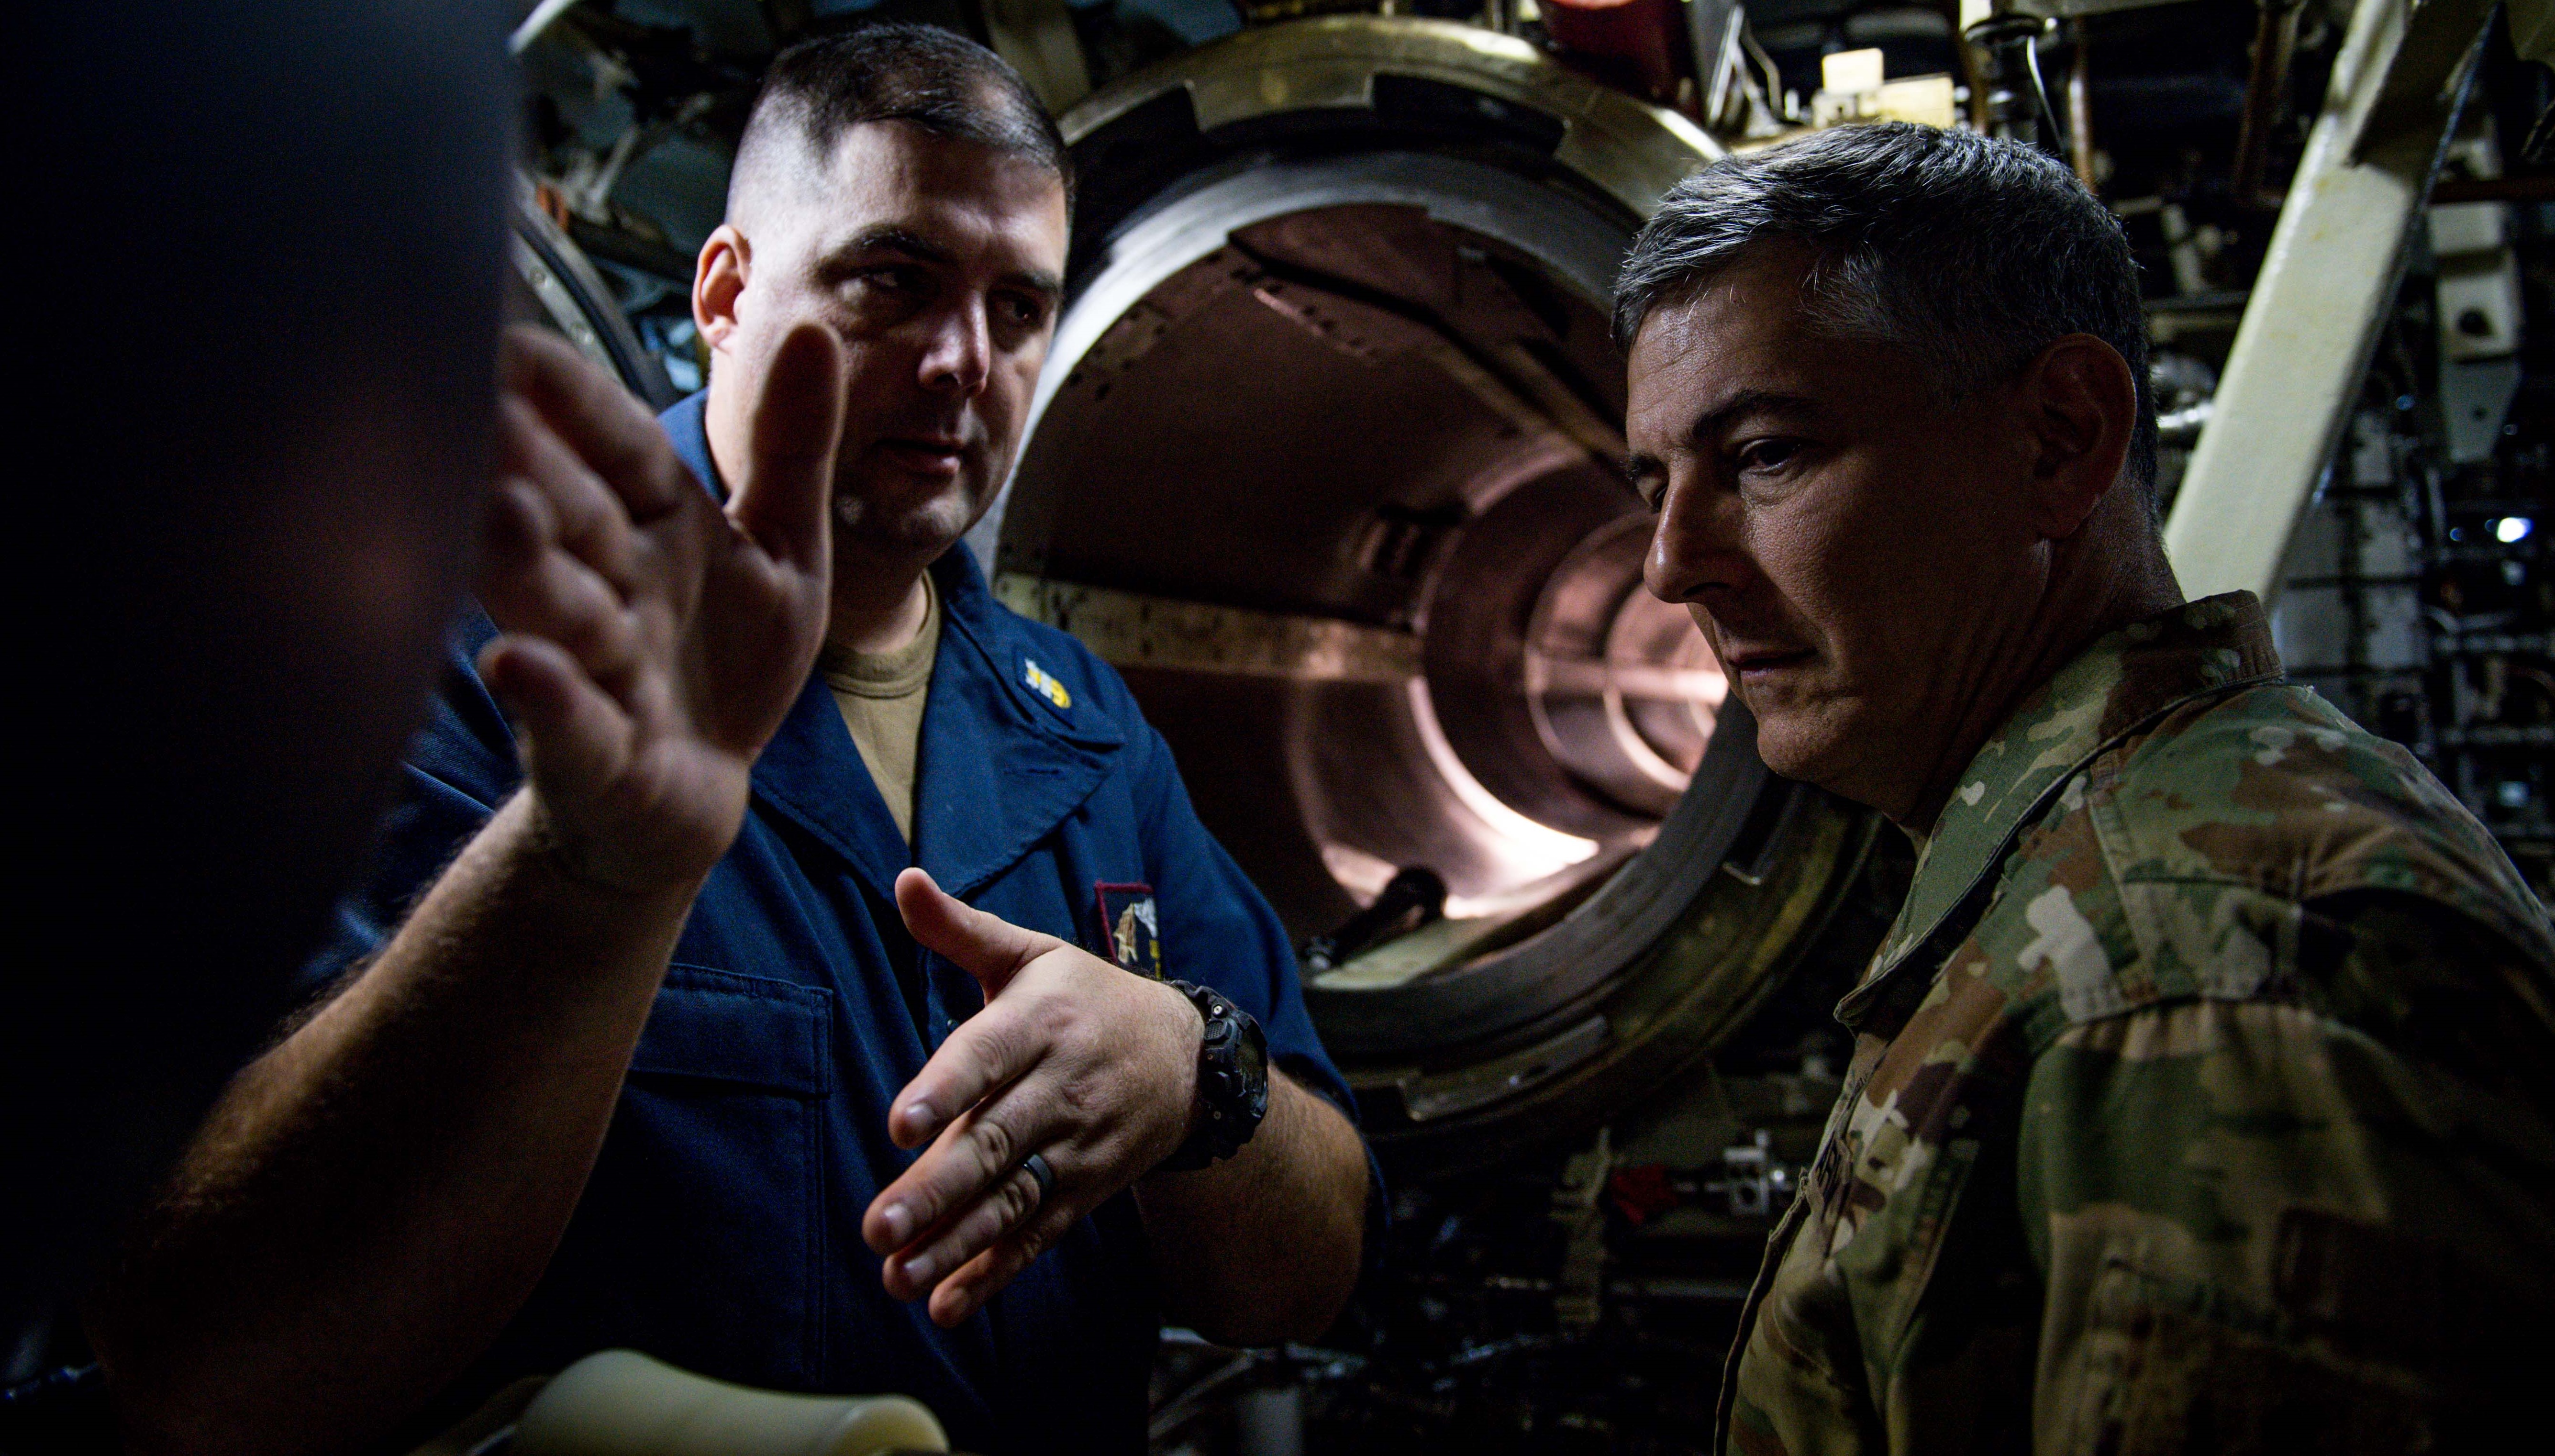 U.S. Army Gen. Stephen J. Townsend, commander, U.S. Africa Command (AFRICOM), right, speaks with Command Master Chief Joseph H. Riley, chief of the boat, Ohio-class fleet guided-missile submarine USS Florida (SSGN 728), in the torpedo room aboard the ship in the Mediterranean Sea Nov. 25, 2019. AFRICOM, a full-spectrum combatant command, is one of the six U.S. Defense Department's geographic combatant commands and is responsible for all DoD operations, exercises, and security cooperation on the African continent, its island nations, and surrounding waters. (U.S. Navy photo by Mass Communication Specialist 2nd Class Jonathan Nelson)